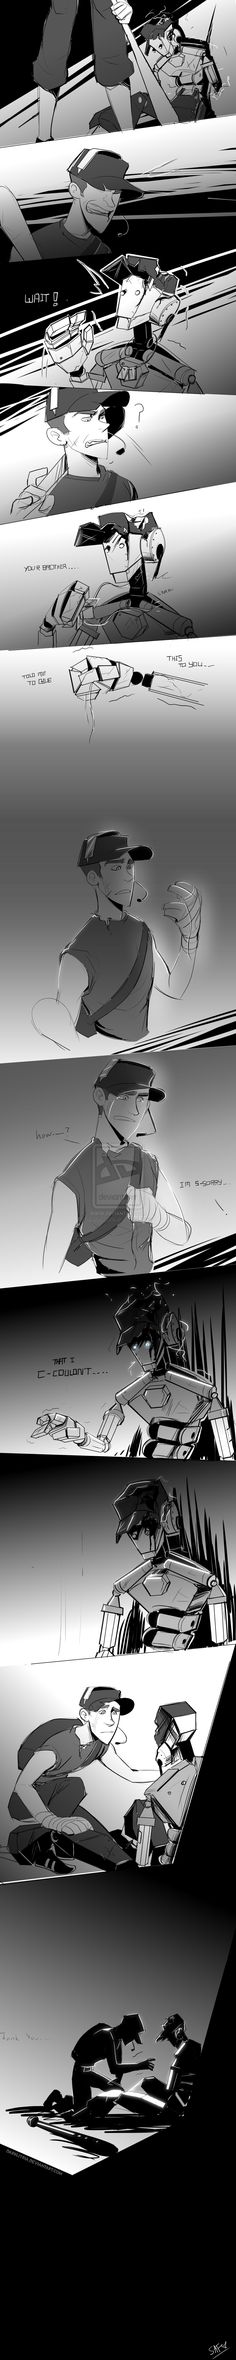 TF2: I'm Sorry... by DarkLitria on DeviantArt